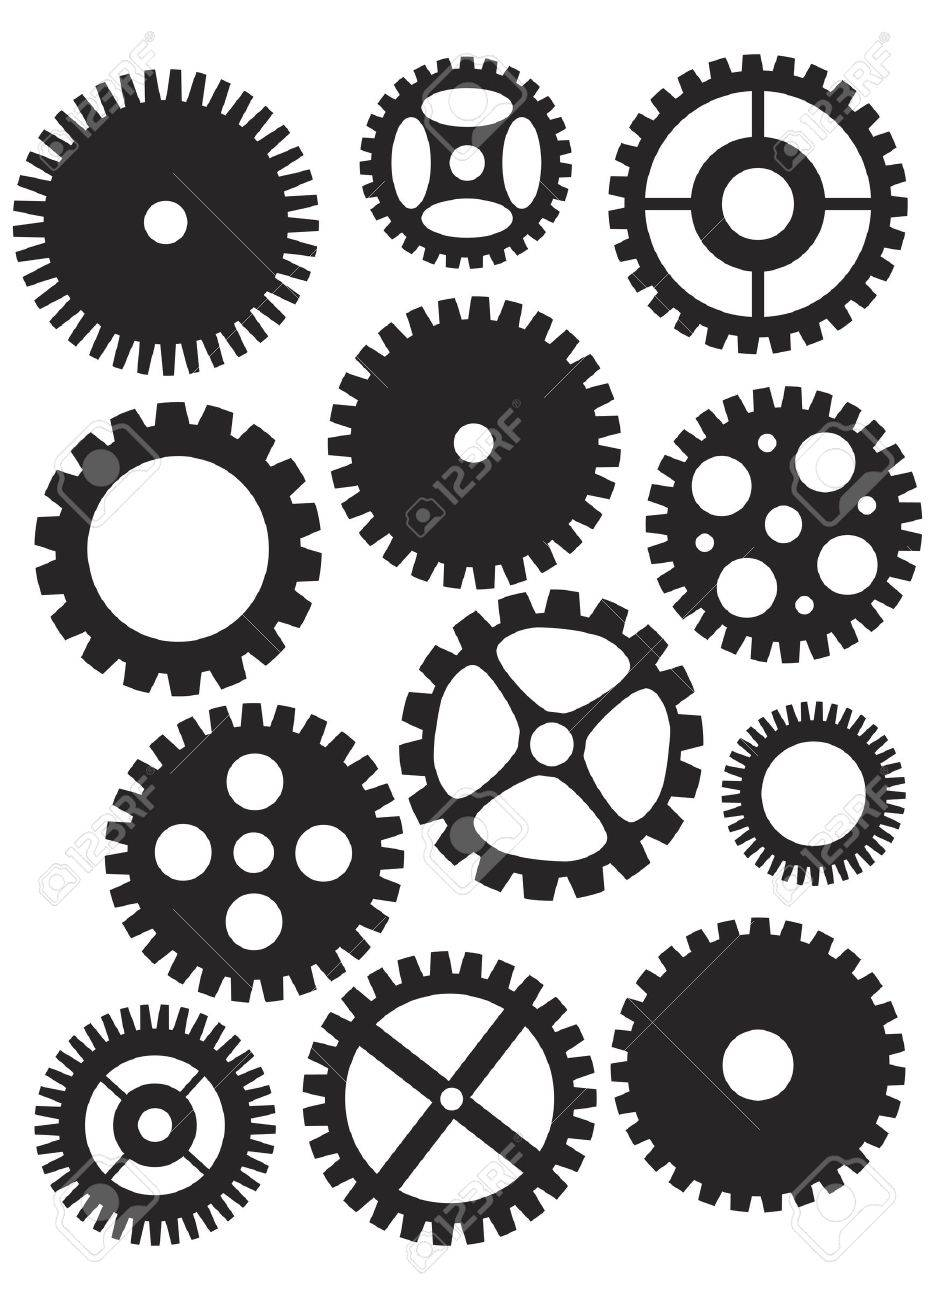 Mechanical Gears or Pulleys of Various Shapes Designs and Sizes Black and White Illustration Isolated on White Background Stock Vector - 16295117